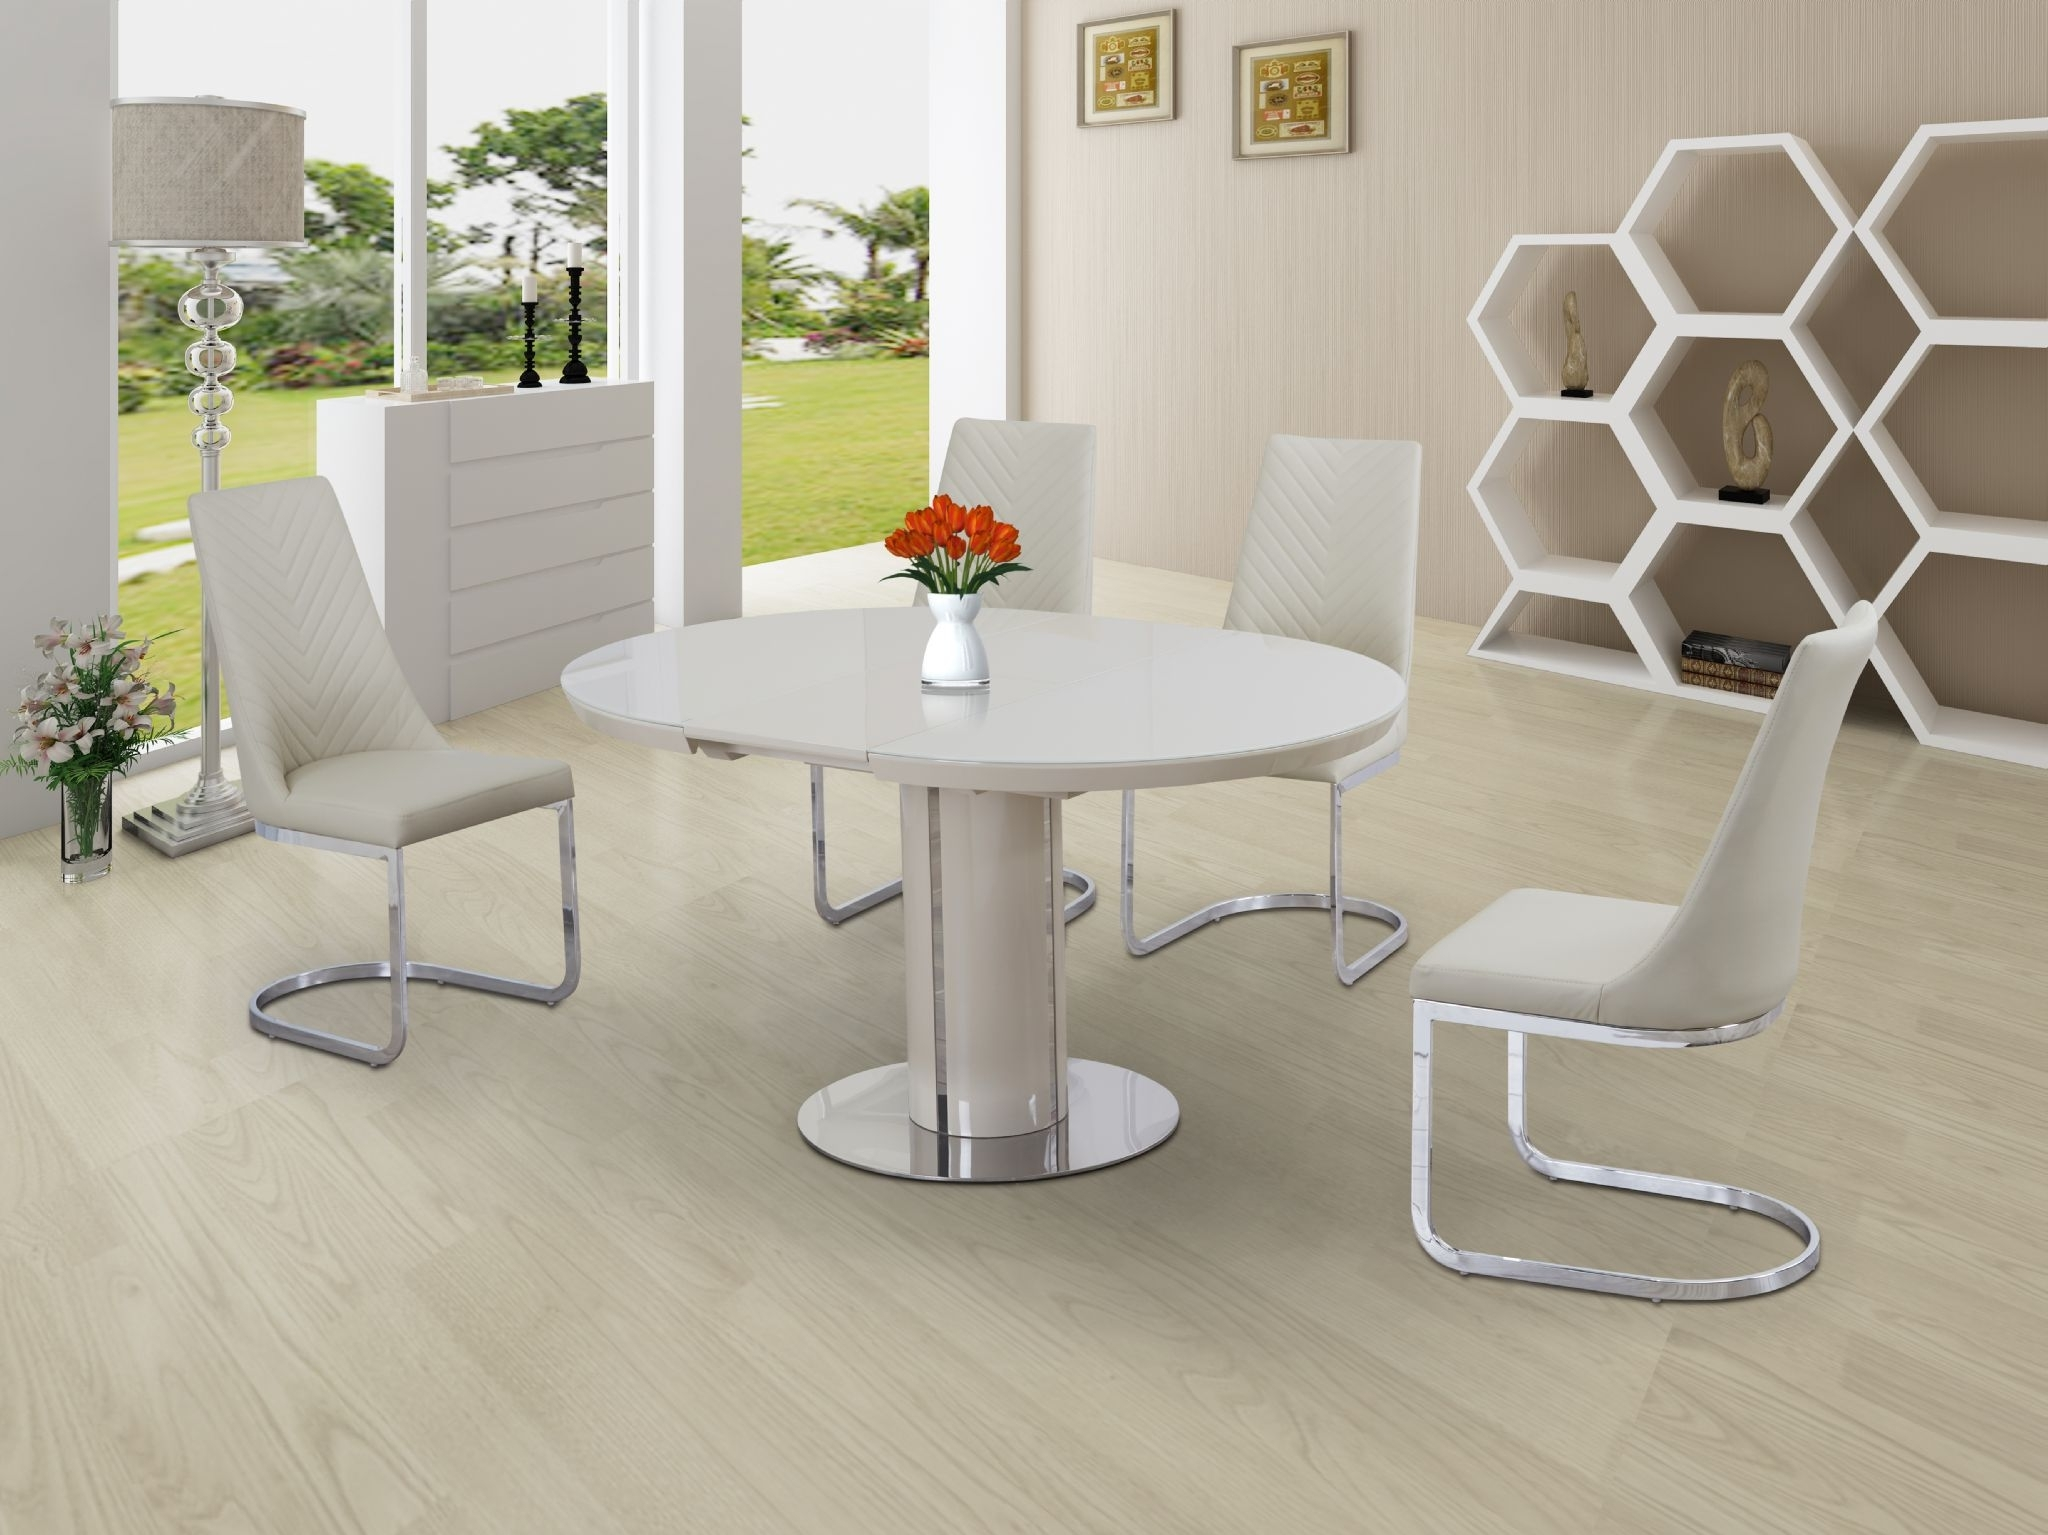 Buy Small Round Extendable Dining Table Today For Current Round Extending Dining Tables Sets (View 2 of 25)